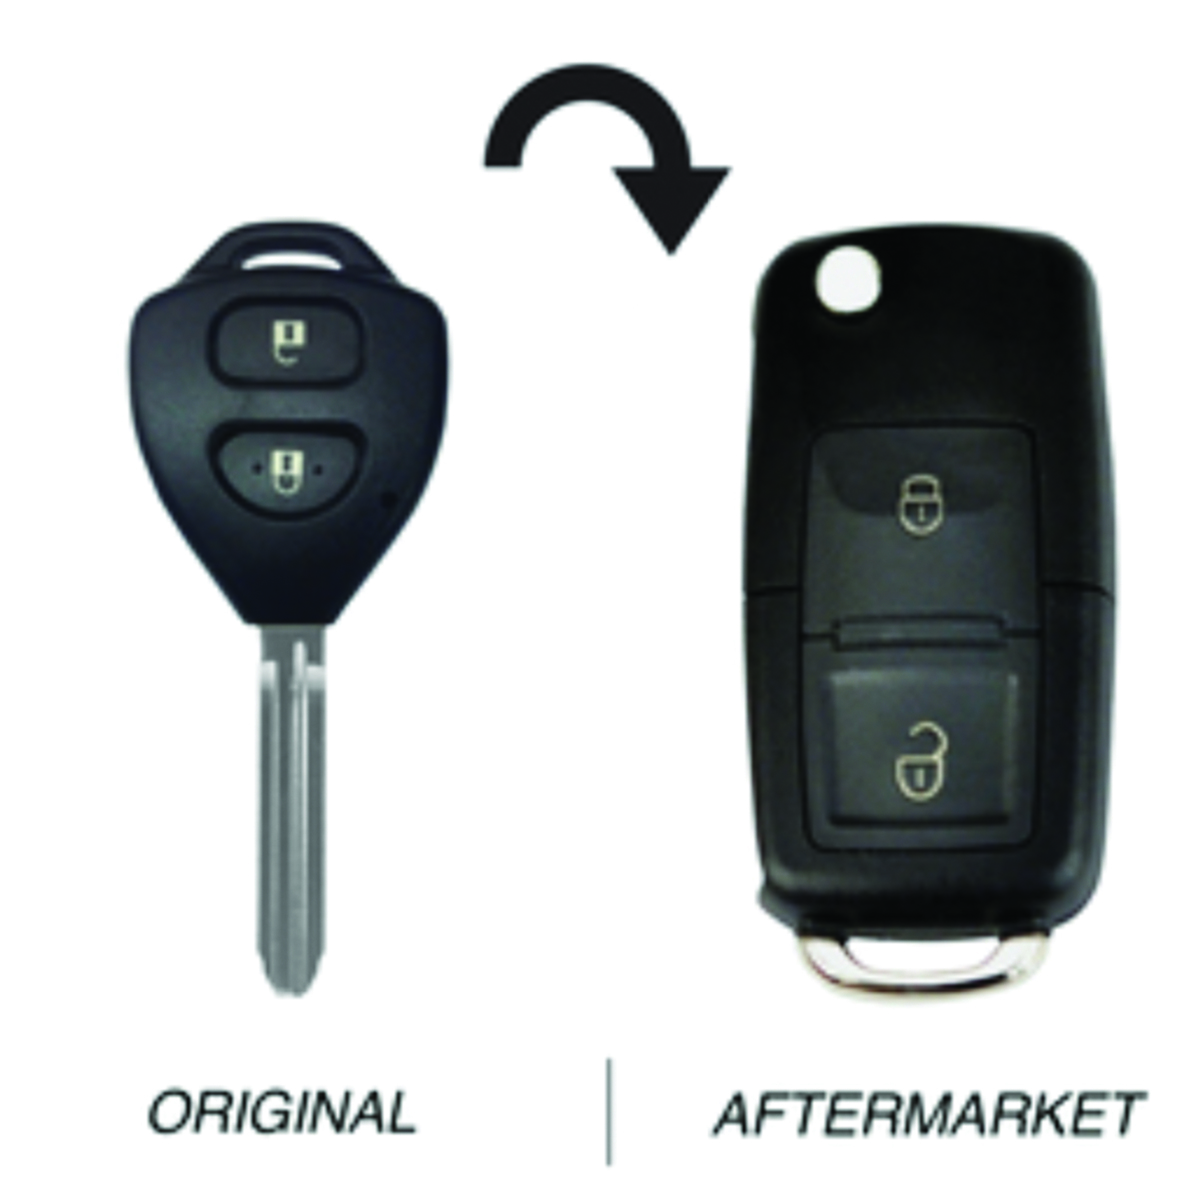 Toyota compatible 2 button TOY43 remote Key 67 Chip 434MHz, (71051)